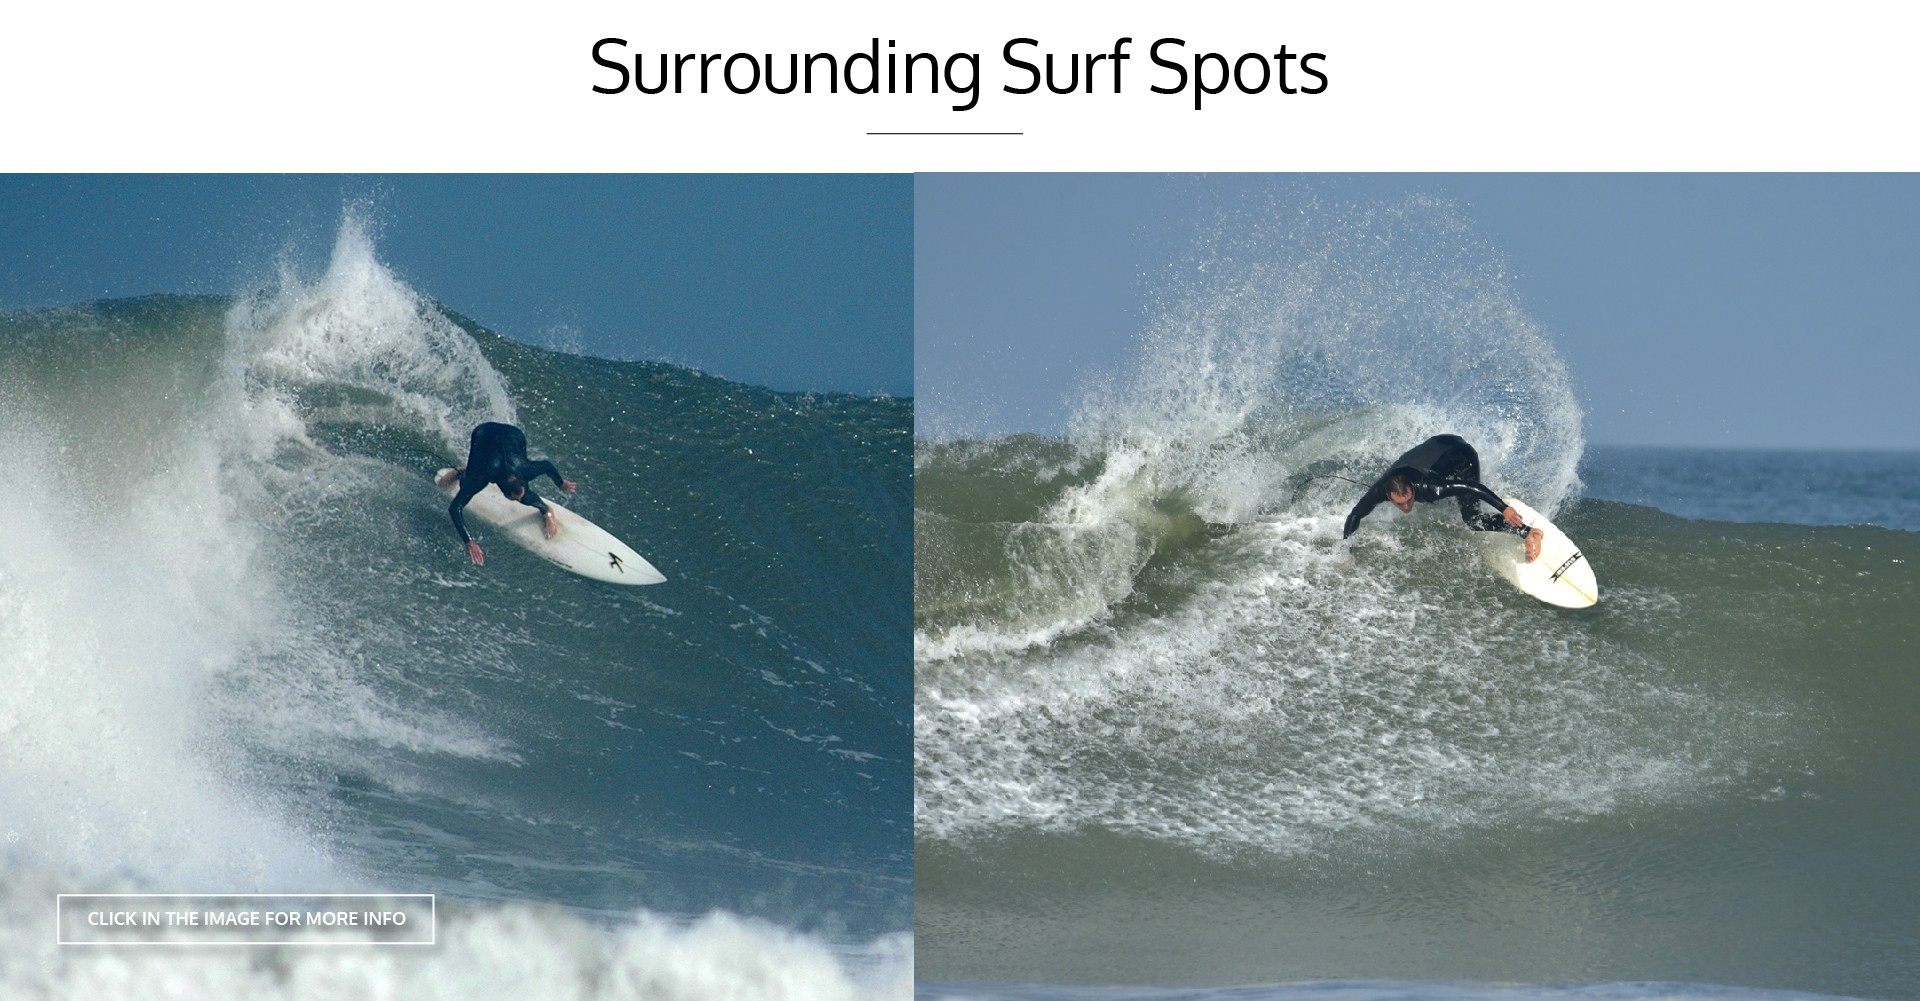 SURROUNDING SURF SPOTS